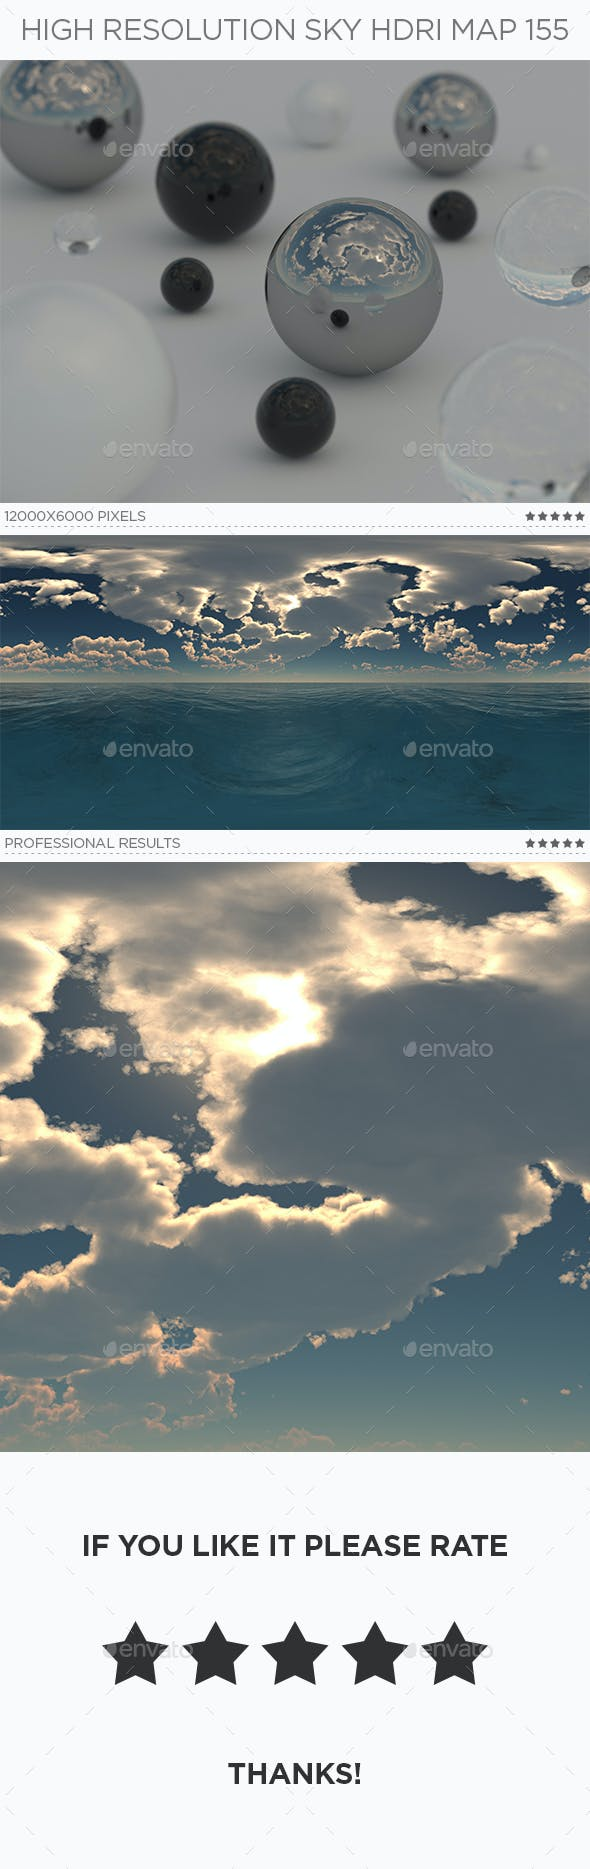 High Resolution Sky HDRi Map 155 - 3DOcean Item for Sale